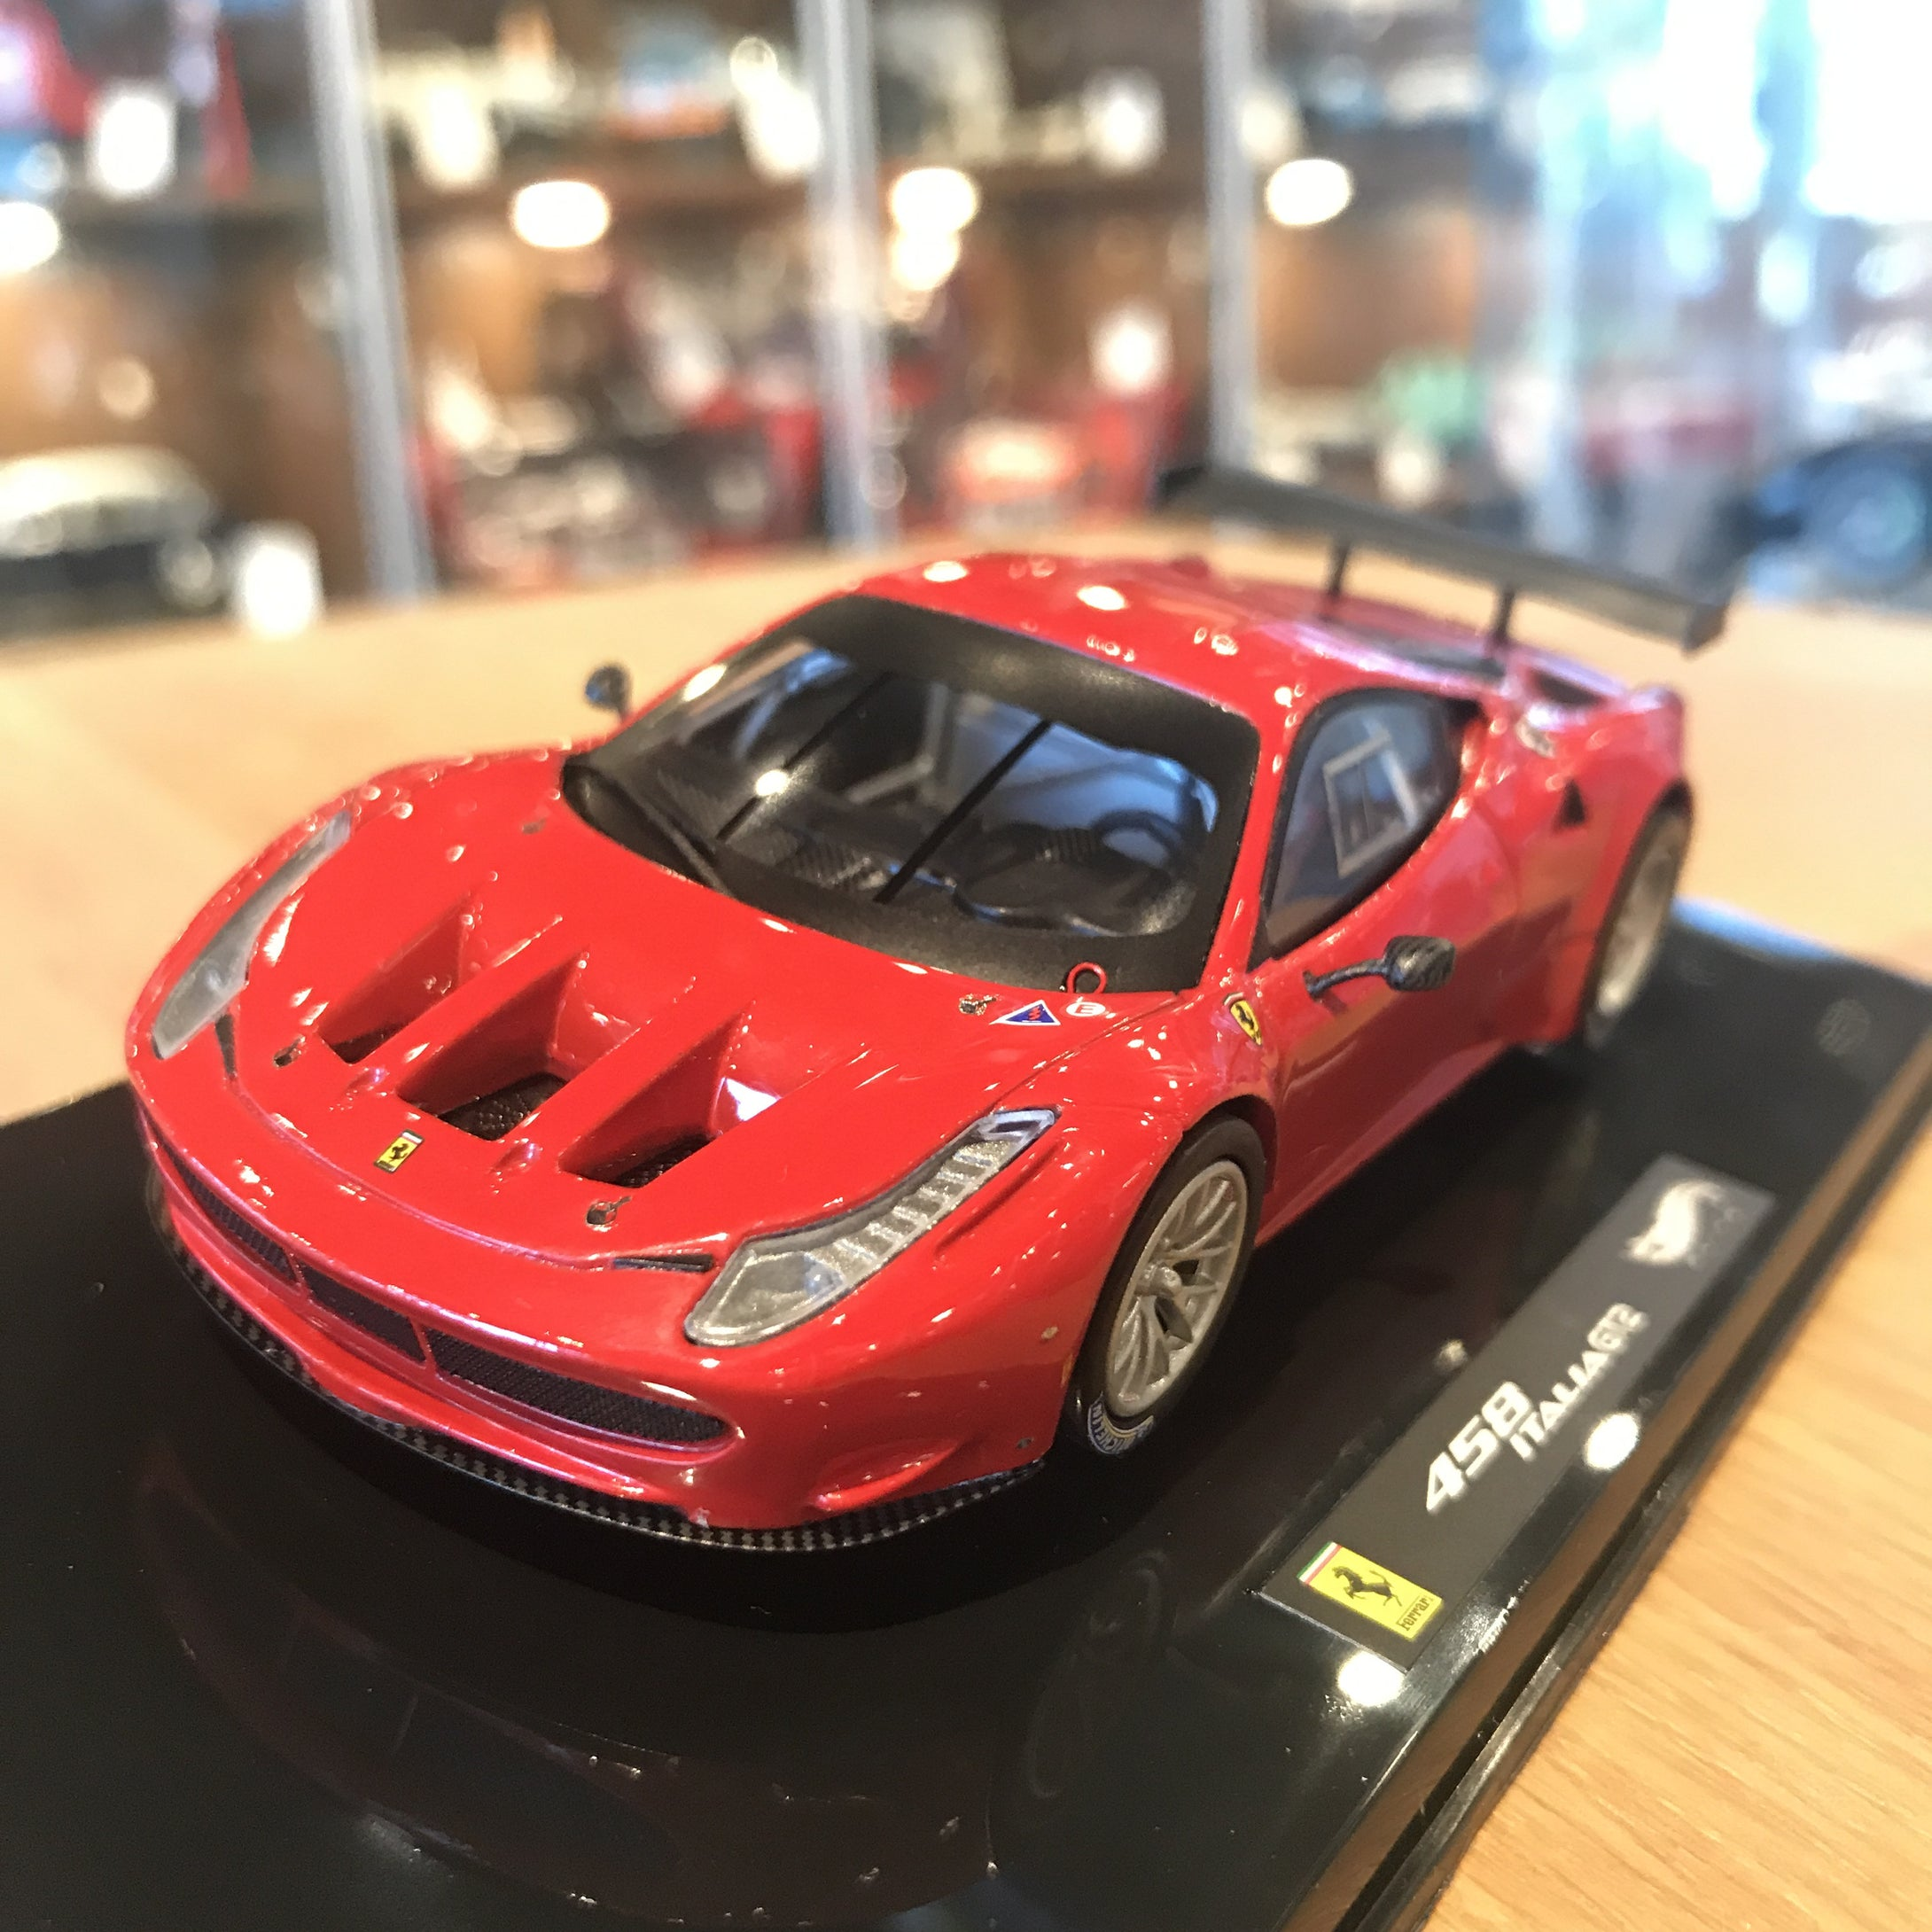 HotWheels 1/43 Elite Ferrari 458 GT2 Plain Body Launch Version X2861